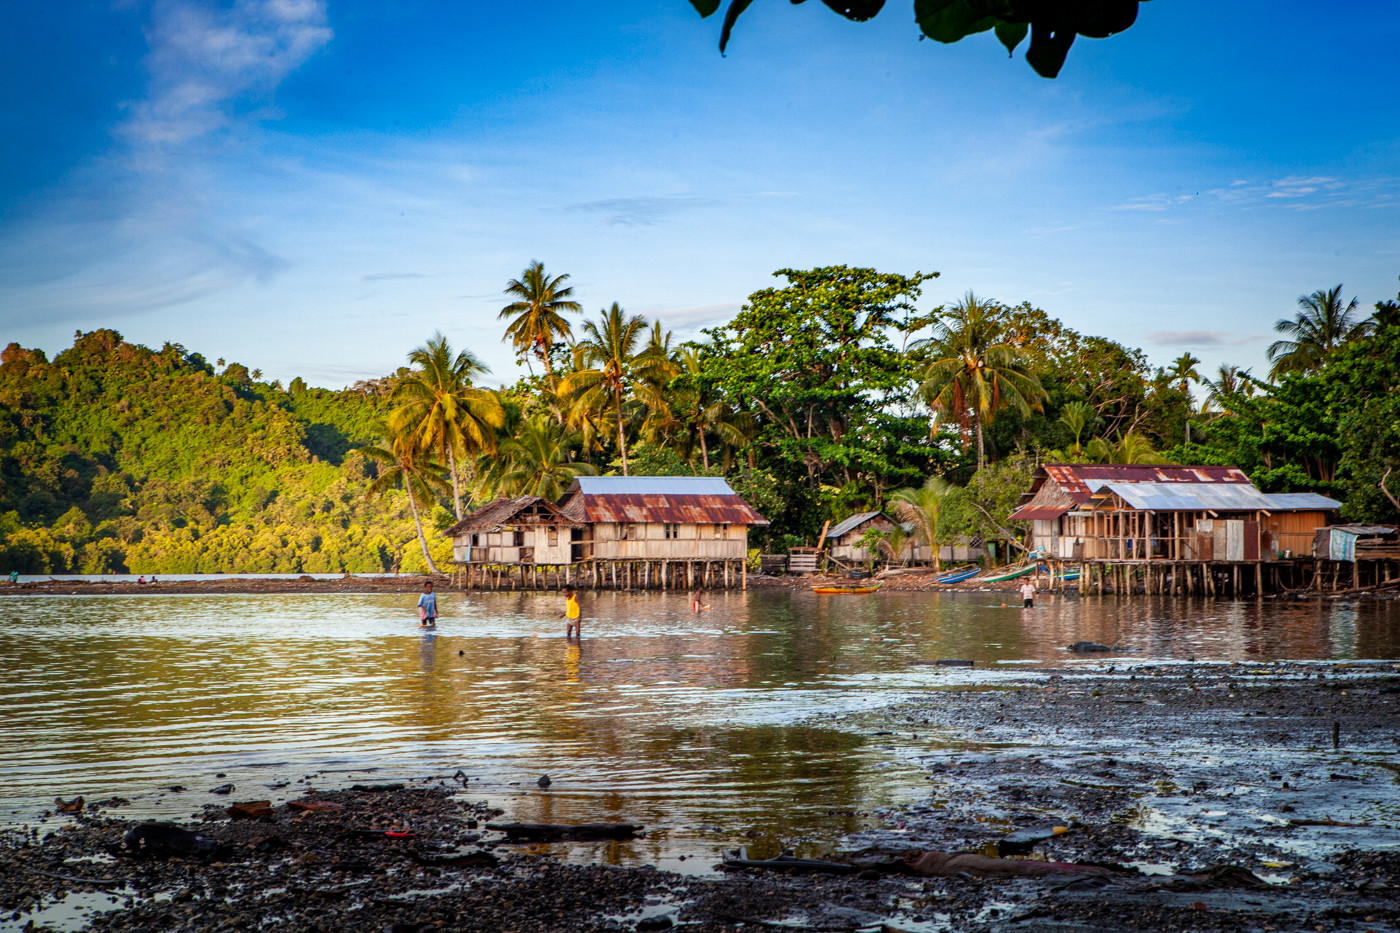 """The stunning oceanside town of Dempta, Indonesia is also home to the """"rebels"""" who oppose the 1969 """"Act of Free Choice"""" where West Papua became a part of Indonesia with the consensus of 1,000 elders from across the vast region. West Papua nationalists rejected the decision and began the Free West Papua movement."""